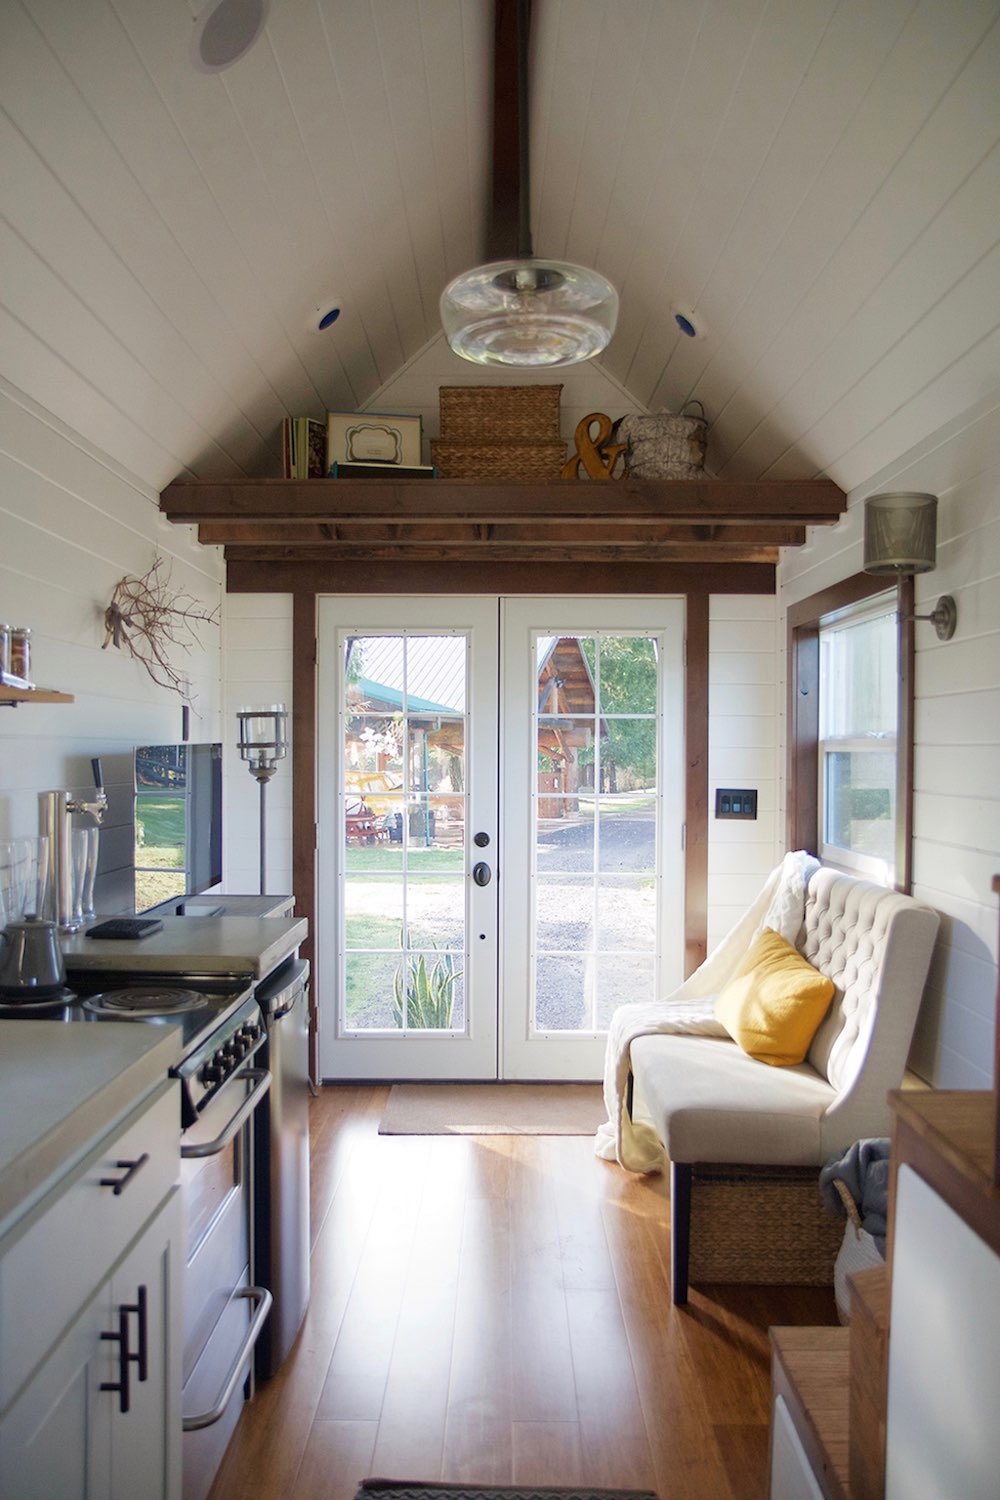 The sapphire house from tiny heirloom tiny house town - Nw Haven By Tiny Heirloom